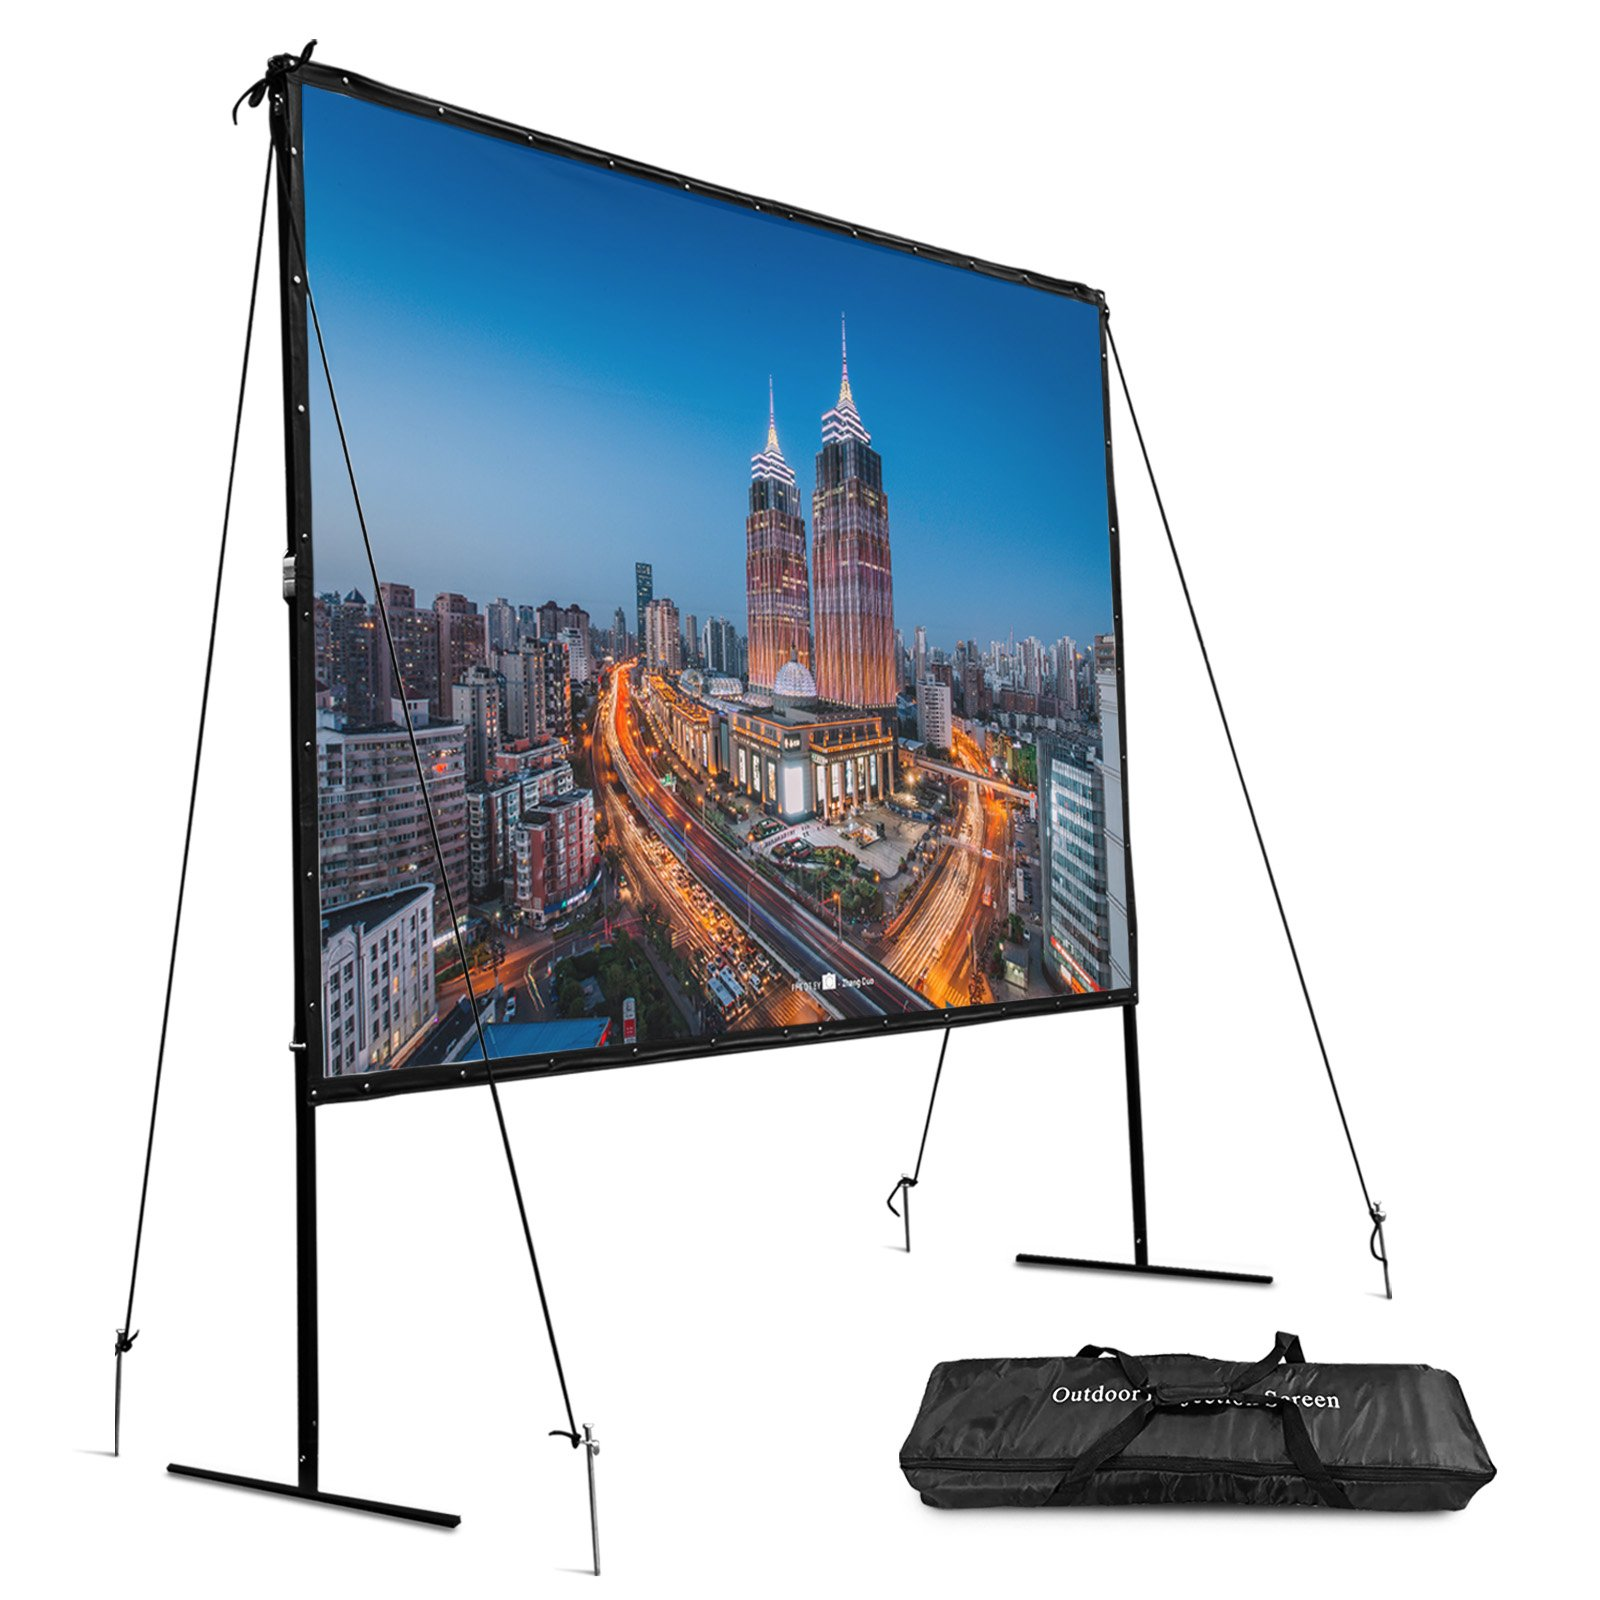 VEVOR Portable Projection Screen 144 Inch 16:9 Indoor and Outdoor Movie Screen With Stand Projector Screen With Carring Bag